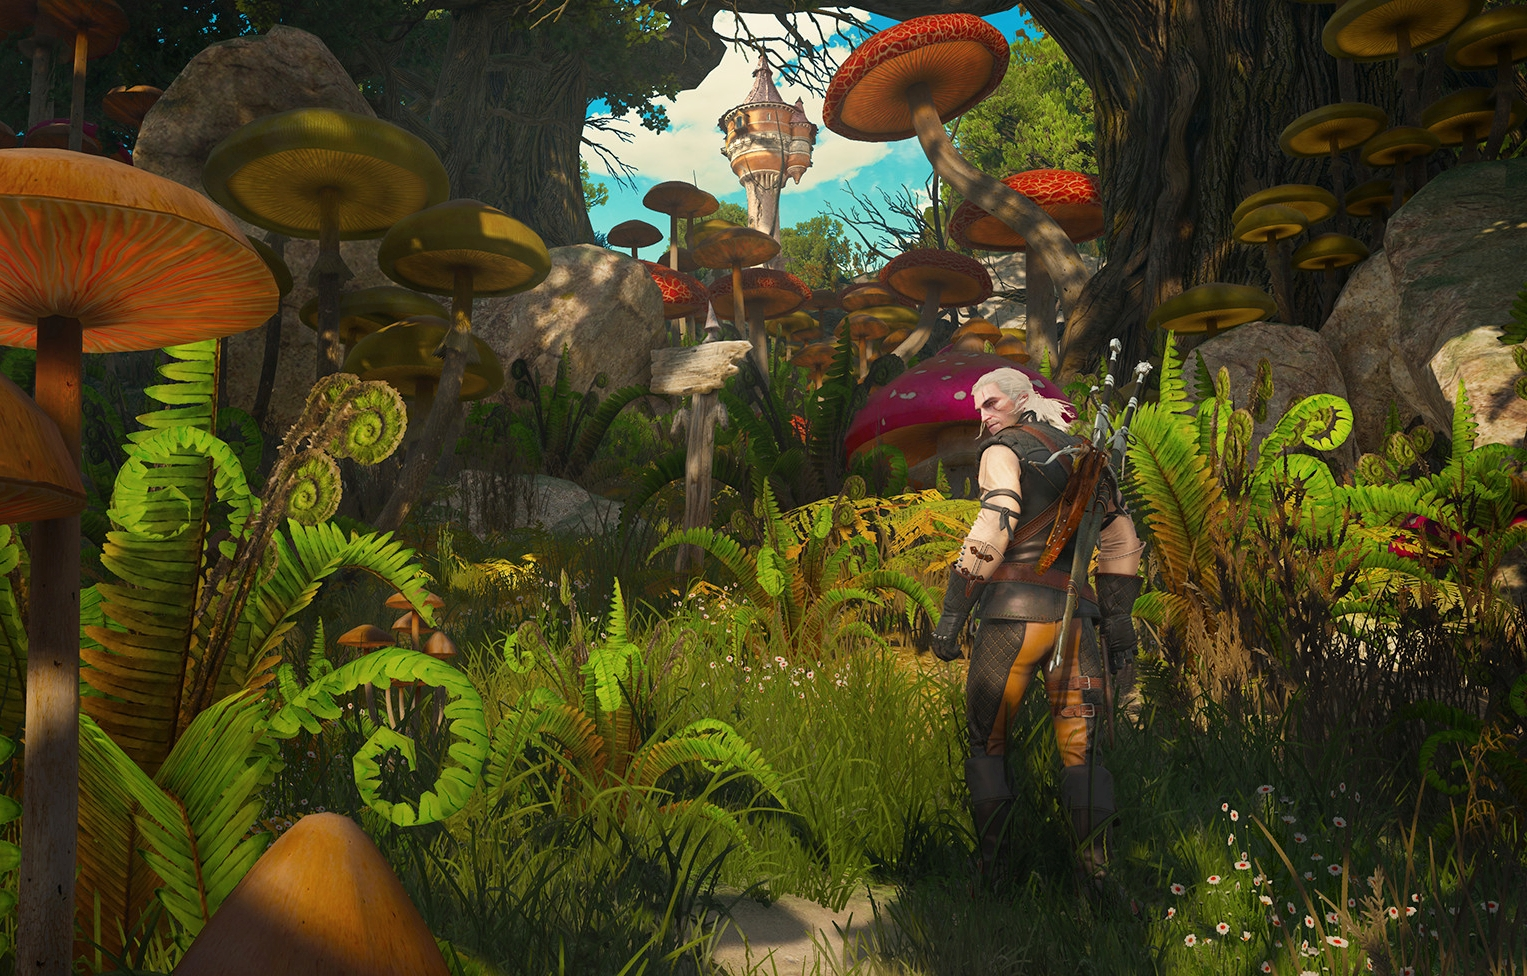 The Witcher 3 HD Reworked Mod Version 11.0 Released With New Content